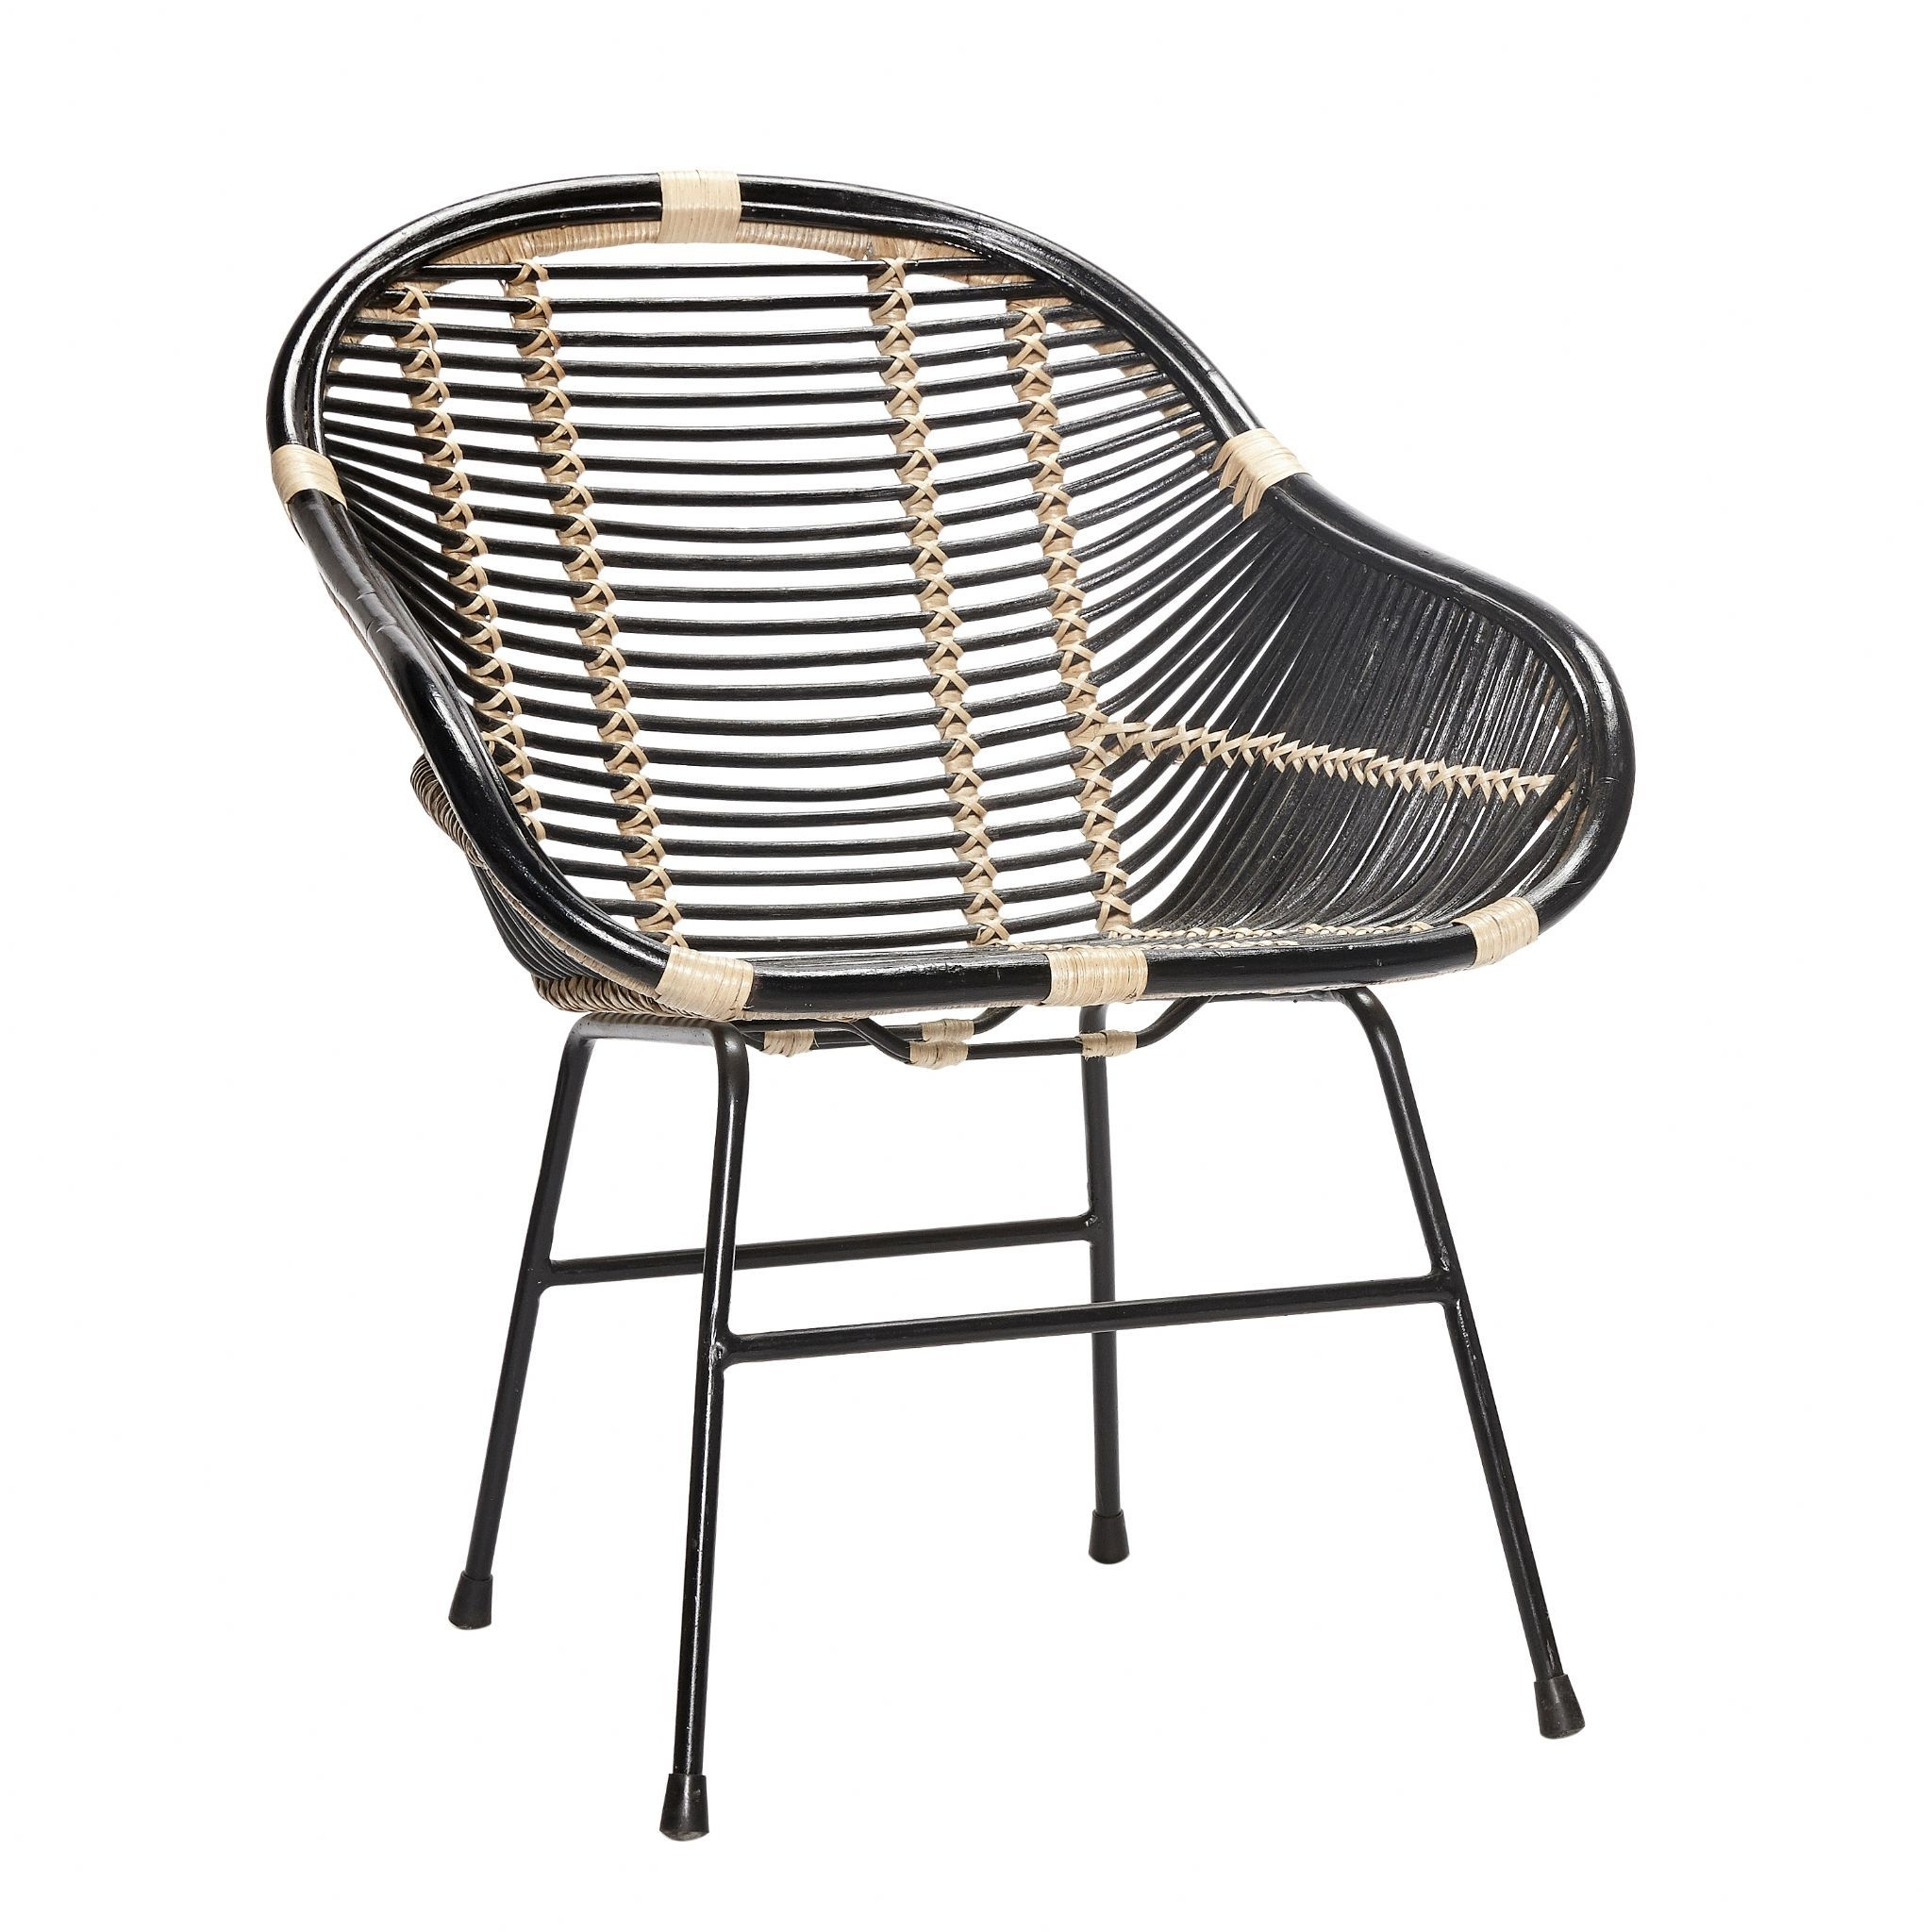 The Capri Black And Natural Rattan Chair Looks Great With A Within Widely Used Magnolia Home Entwine Rattan Arm Chairs (View 17 of 20)